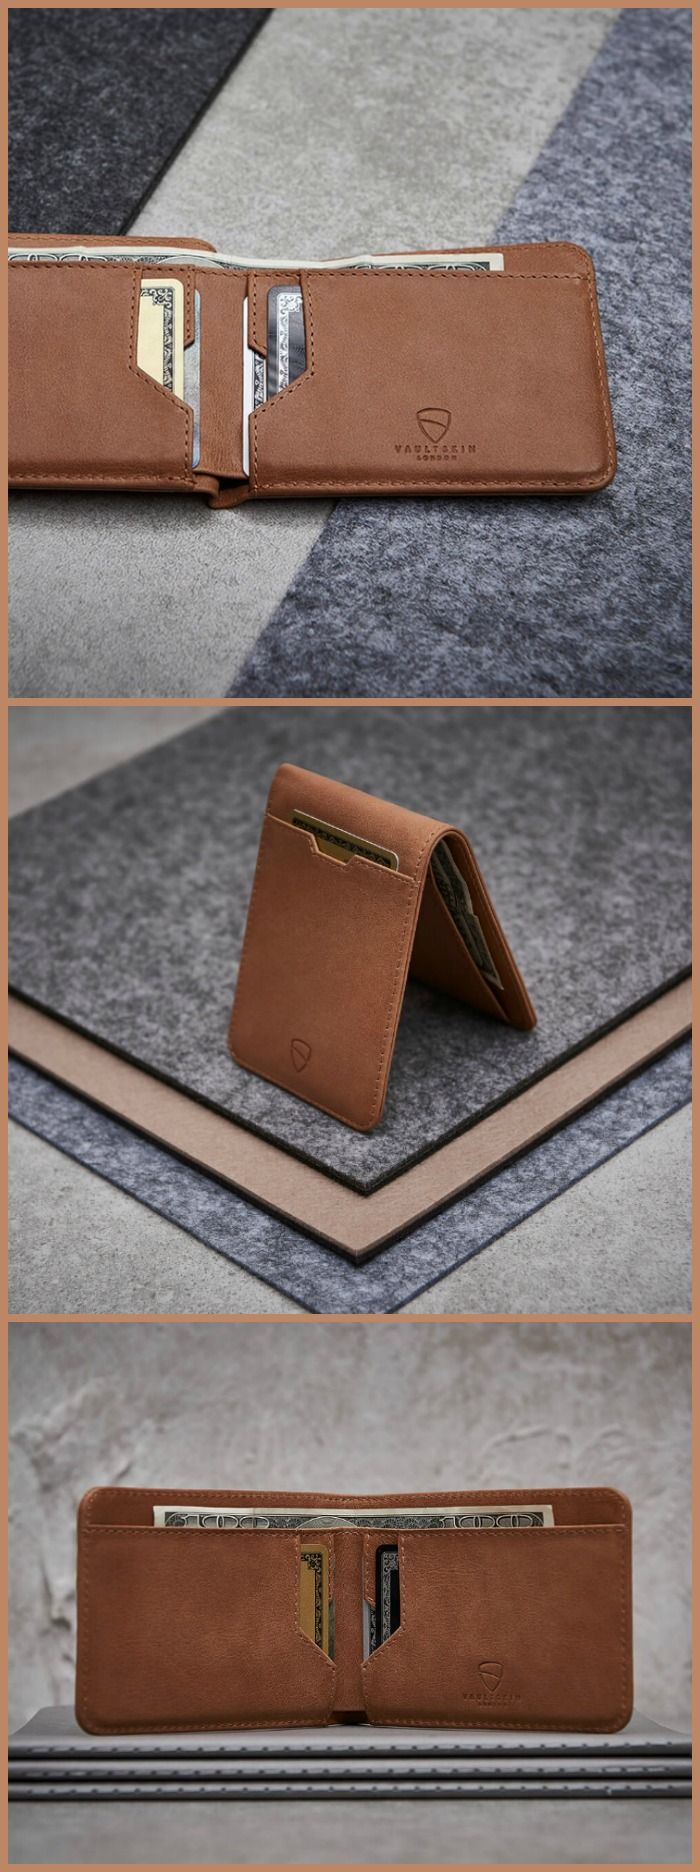 The Vaultskin Manhattan slim bi-fold's intuitive layout displays all of your cards when it's open it so you don't need to dig around for them.